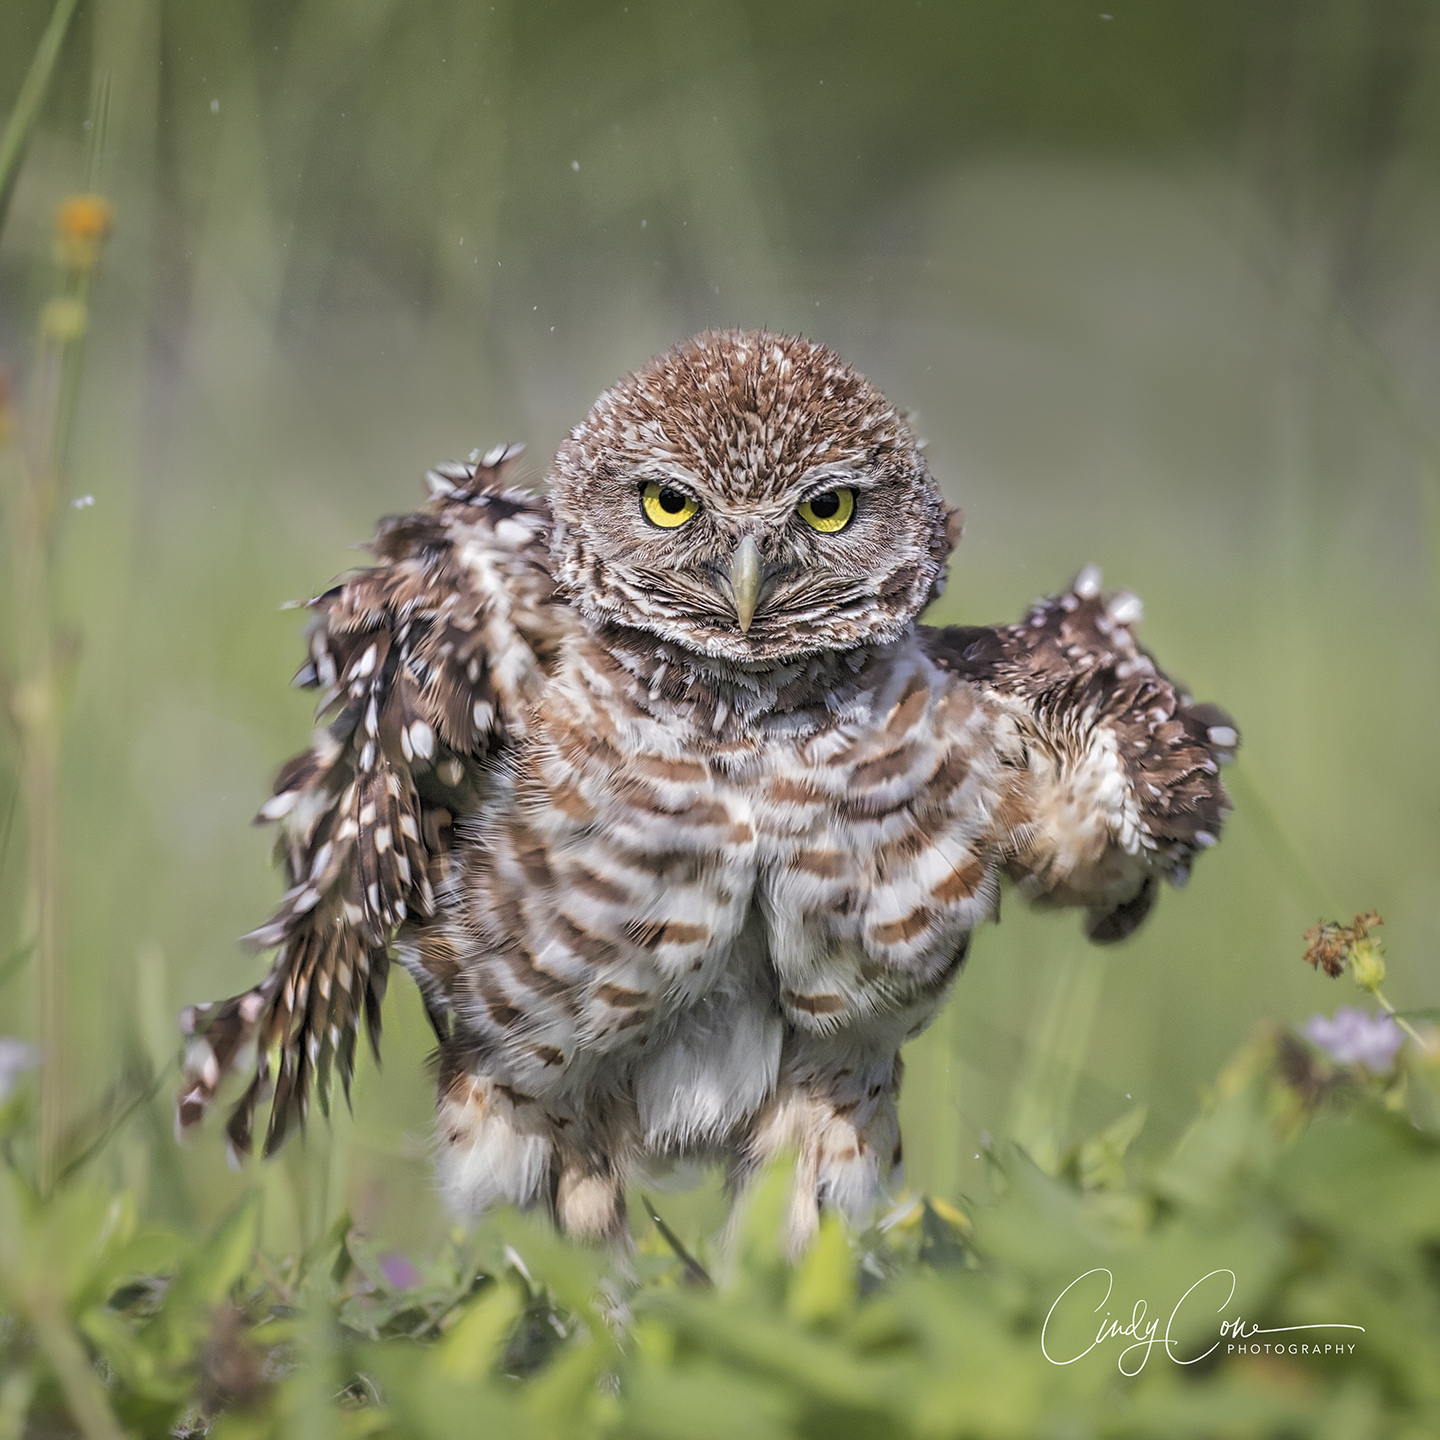 Cape Coral burrowing owl, stretching its wings.